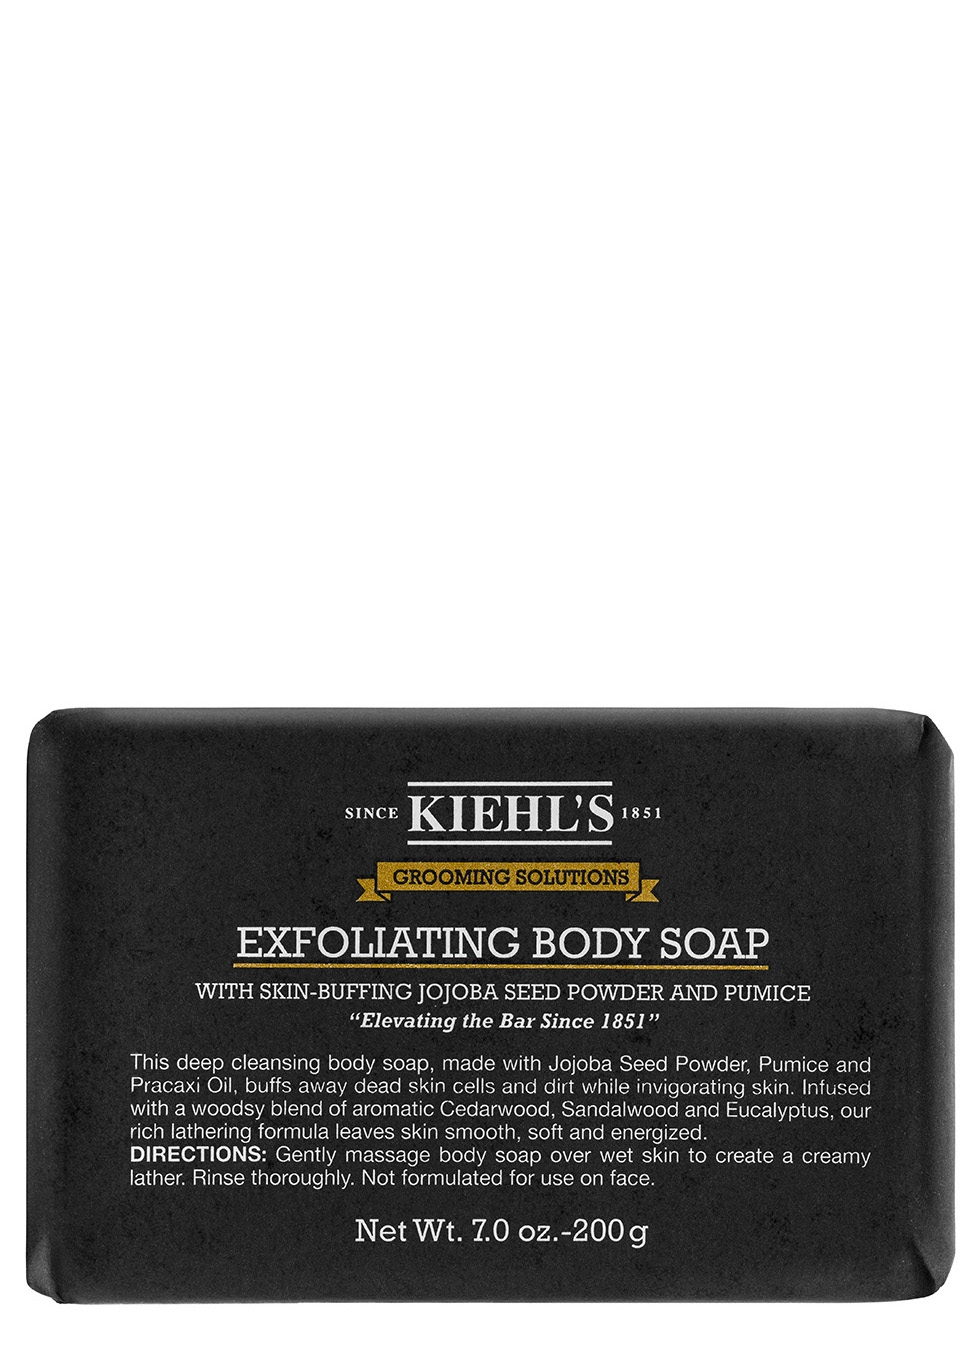 Grooming Solutions Bar Soap 200g